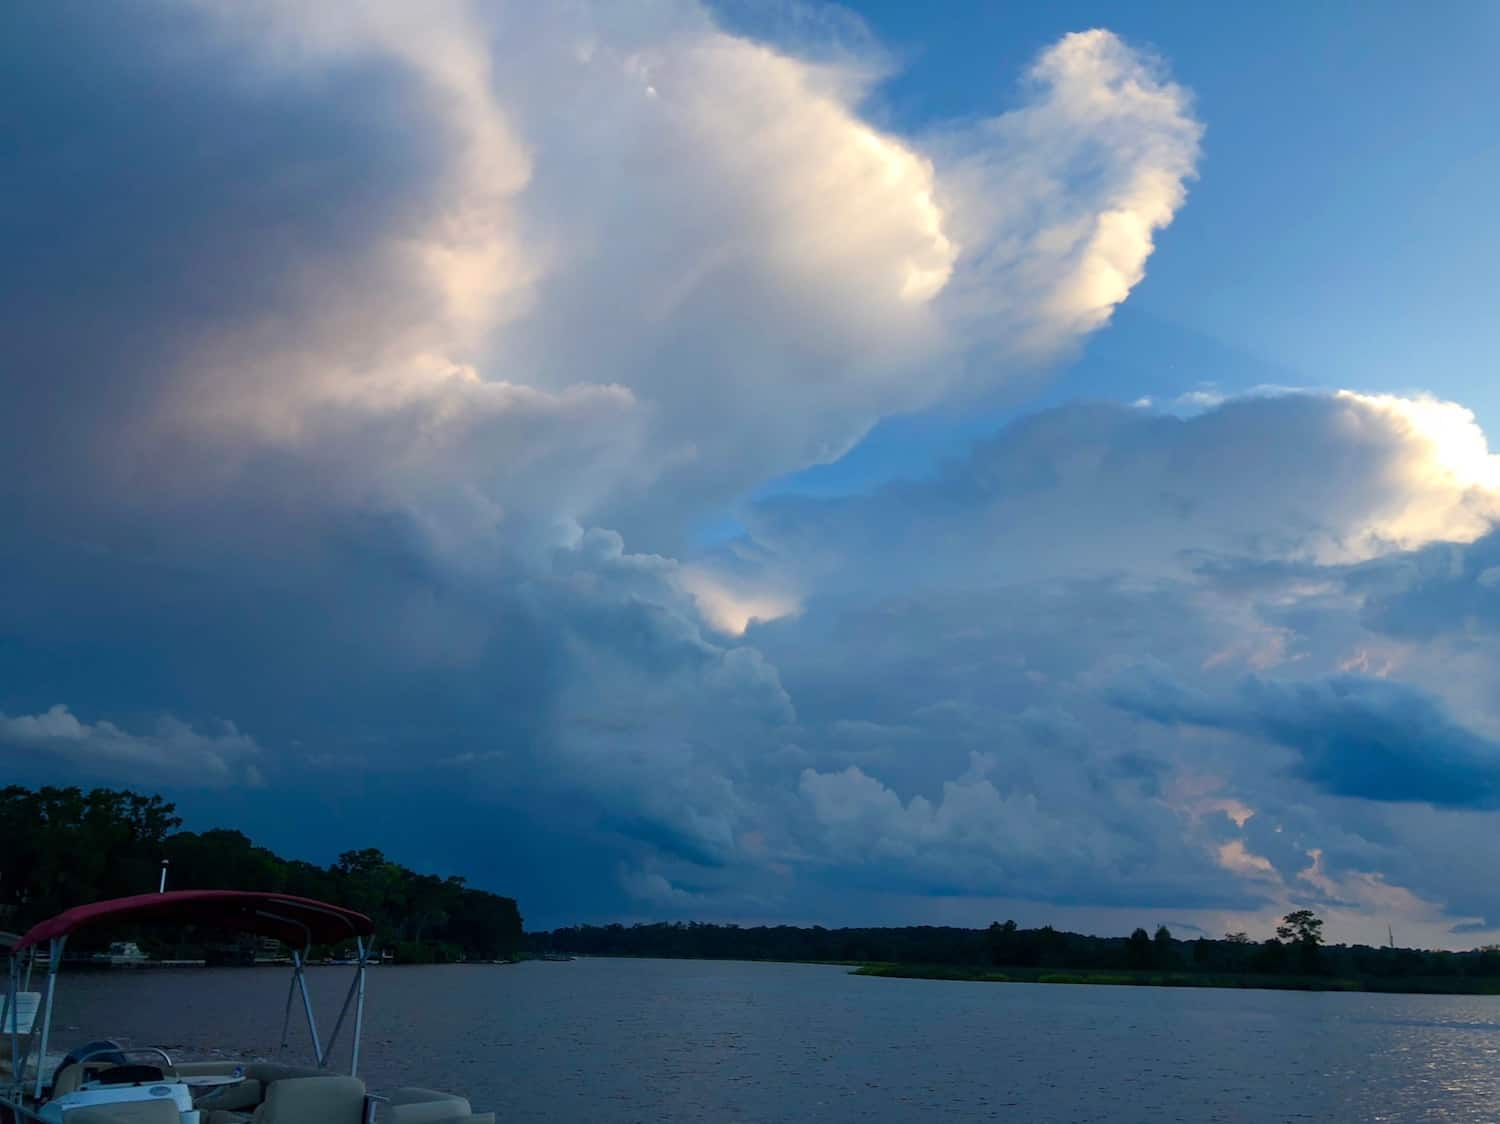 Thunderstorm, Thunderhead, Severe Weather, Weather, Storms,